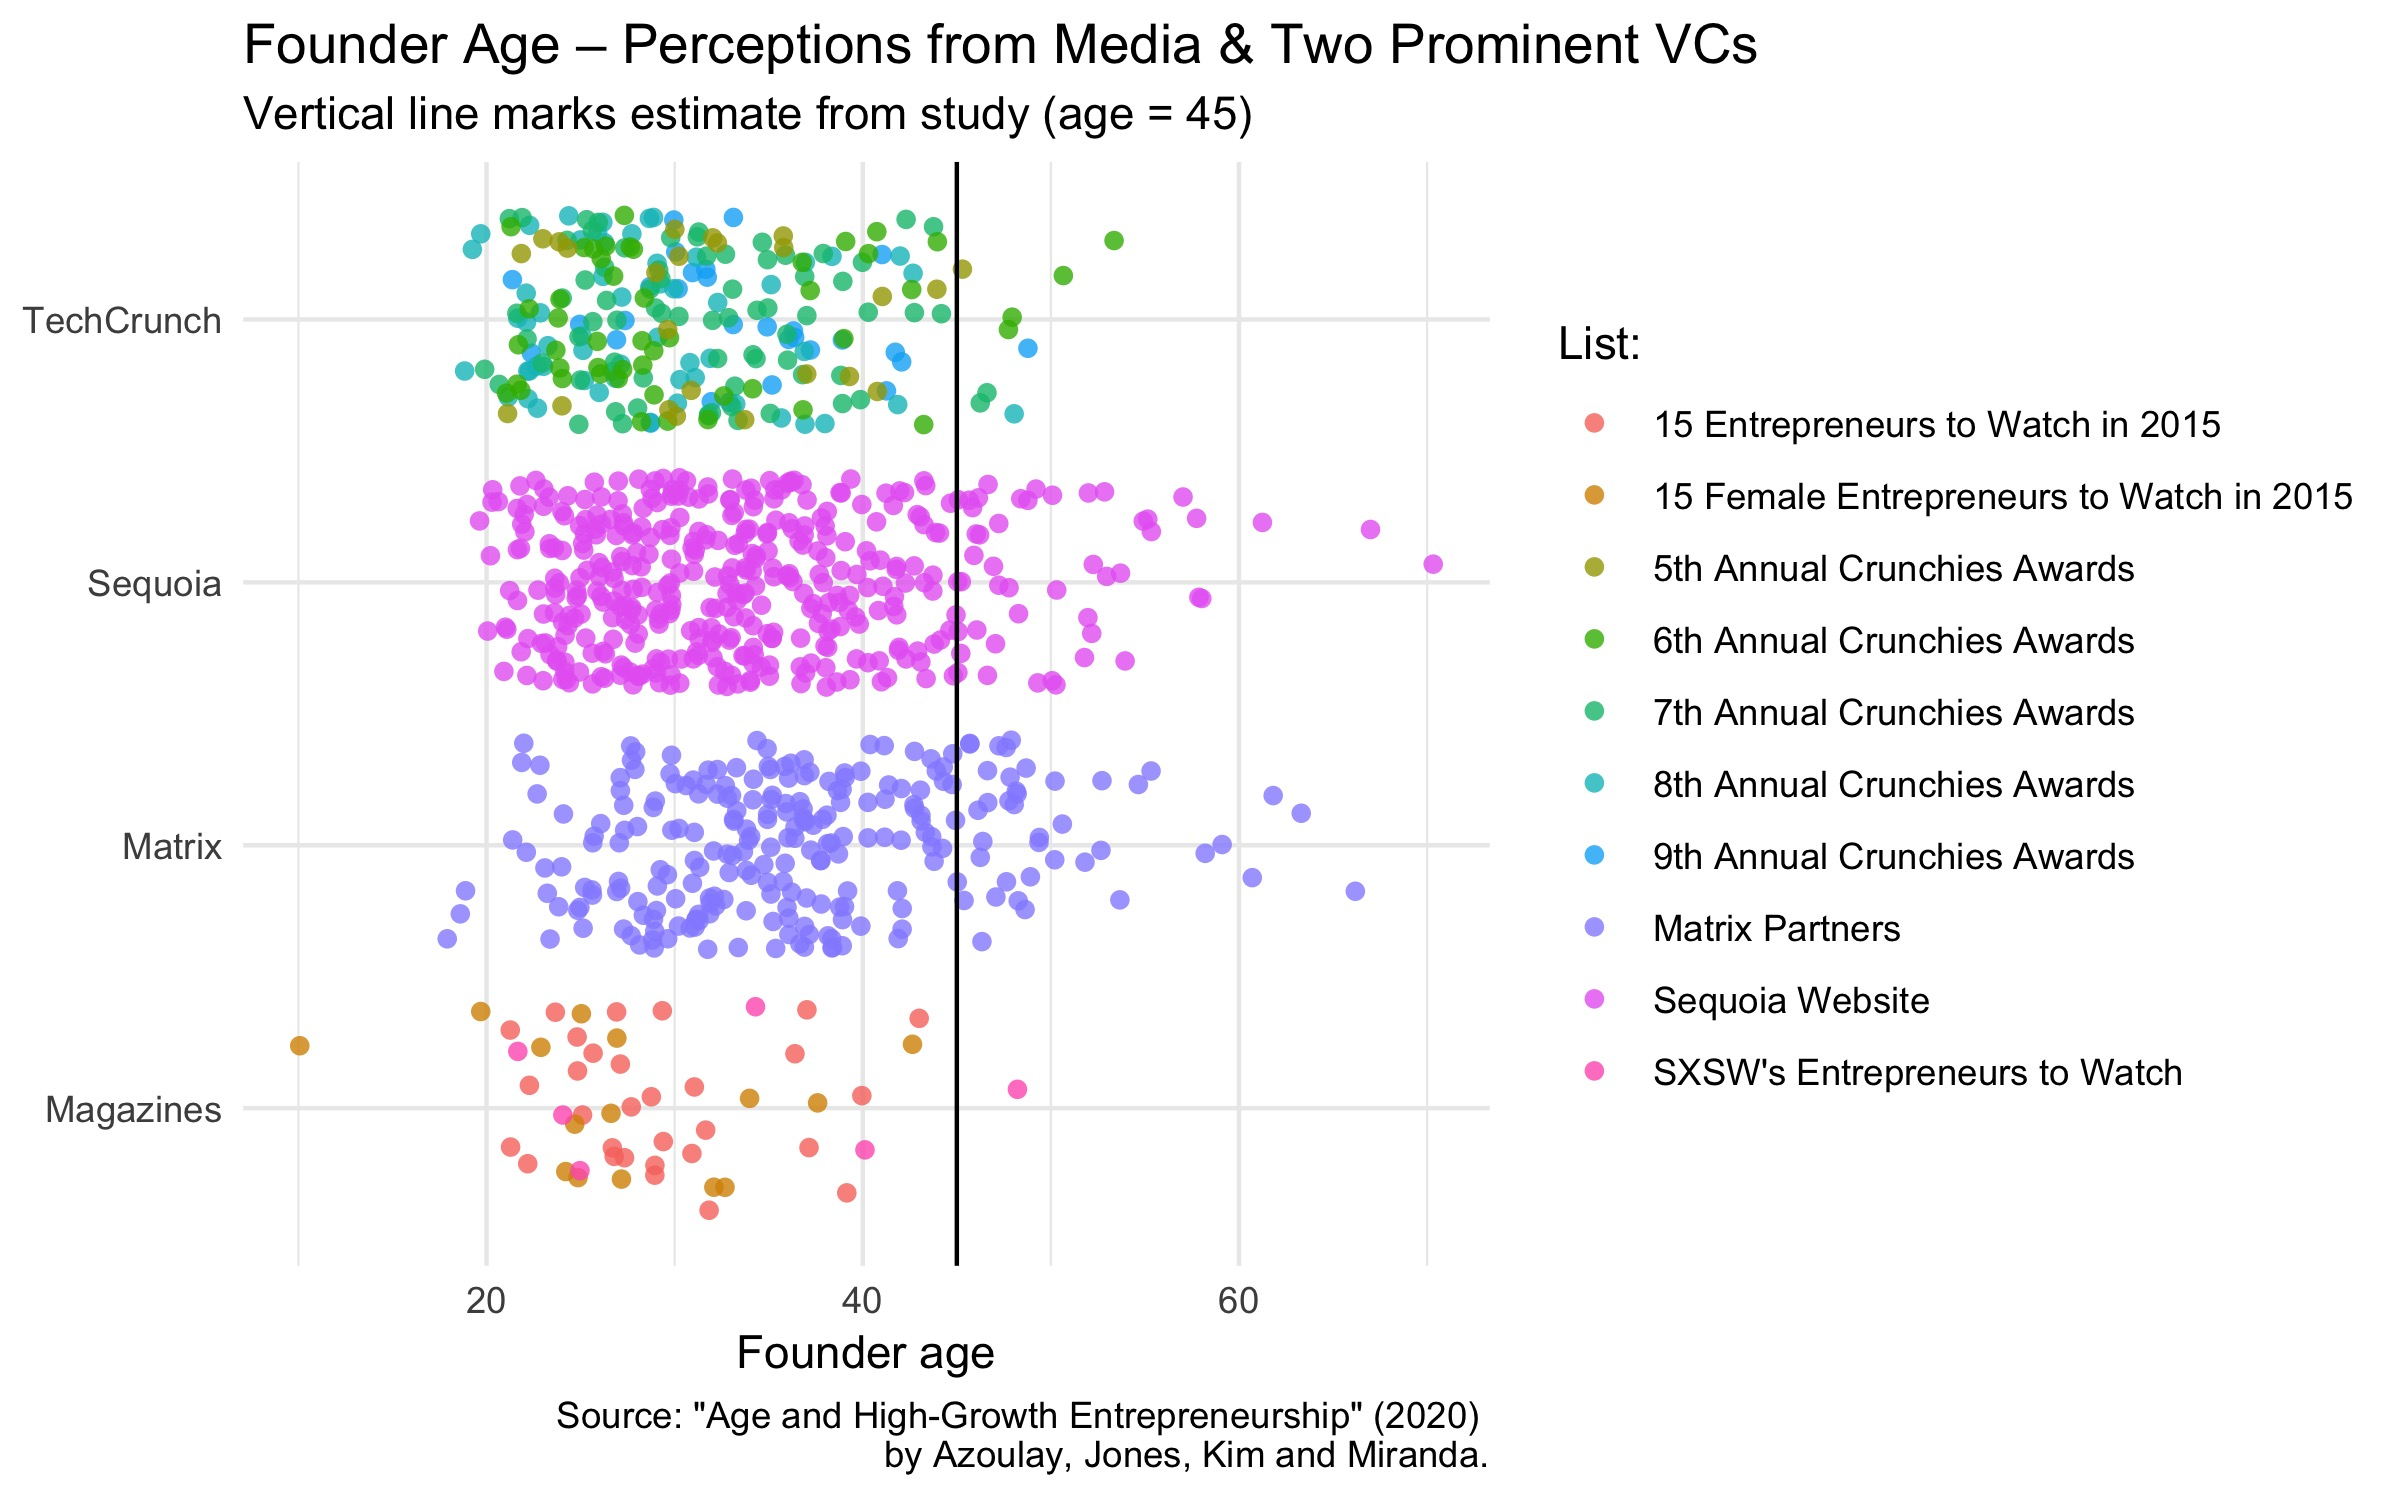 Typical startup founder age as portrayed by two media sources and two prominent venture capital firms